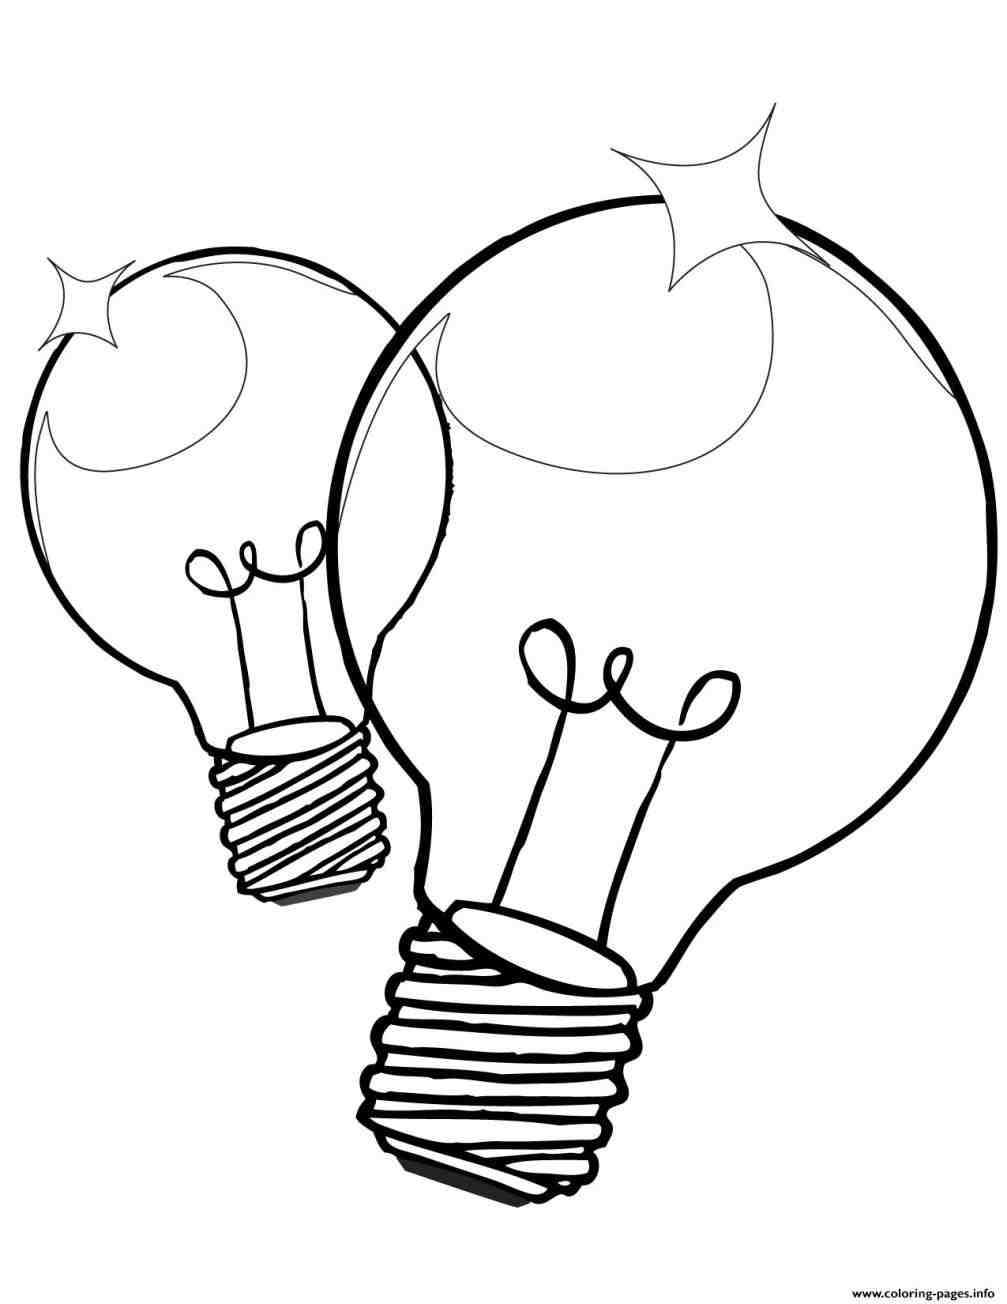 1007x1304 Christmas Light Bulb Coloring Pages Cheminee.website